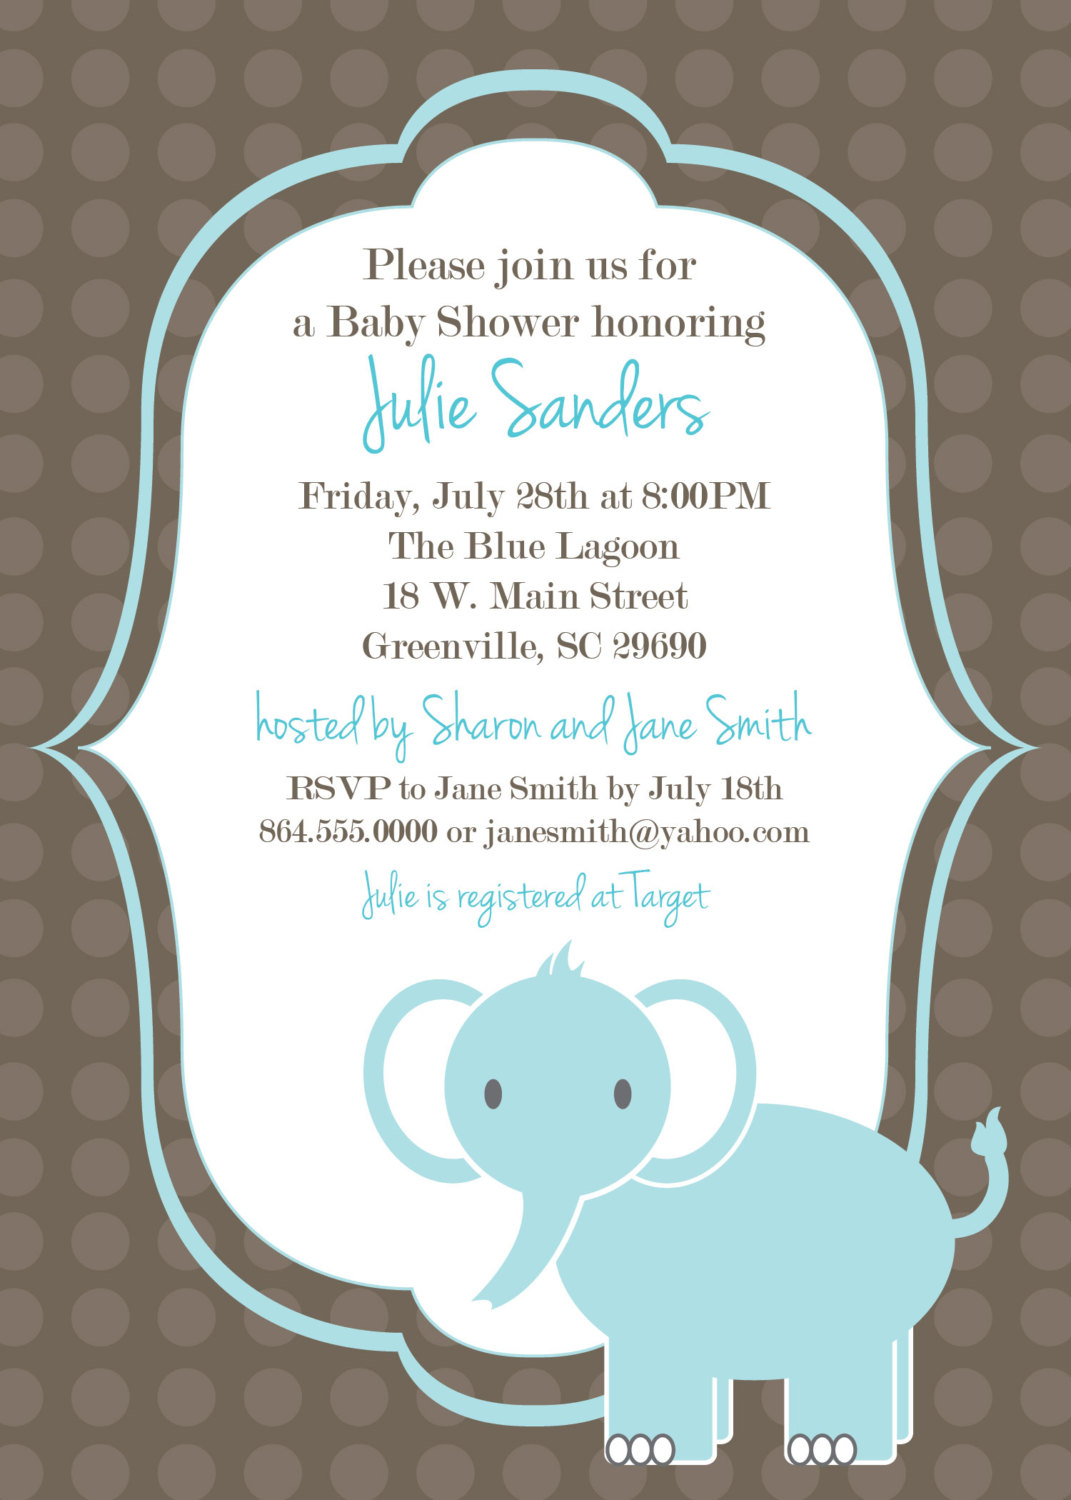 shower ideas themes boy decorations plus baby yellow and elephant with favor tags together free theme of printables invitations themed pink printable full well size as grey